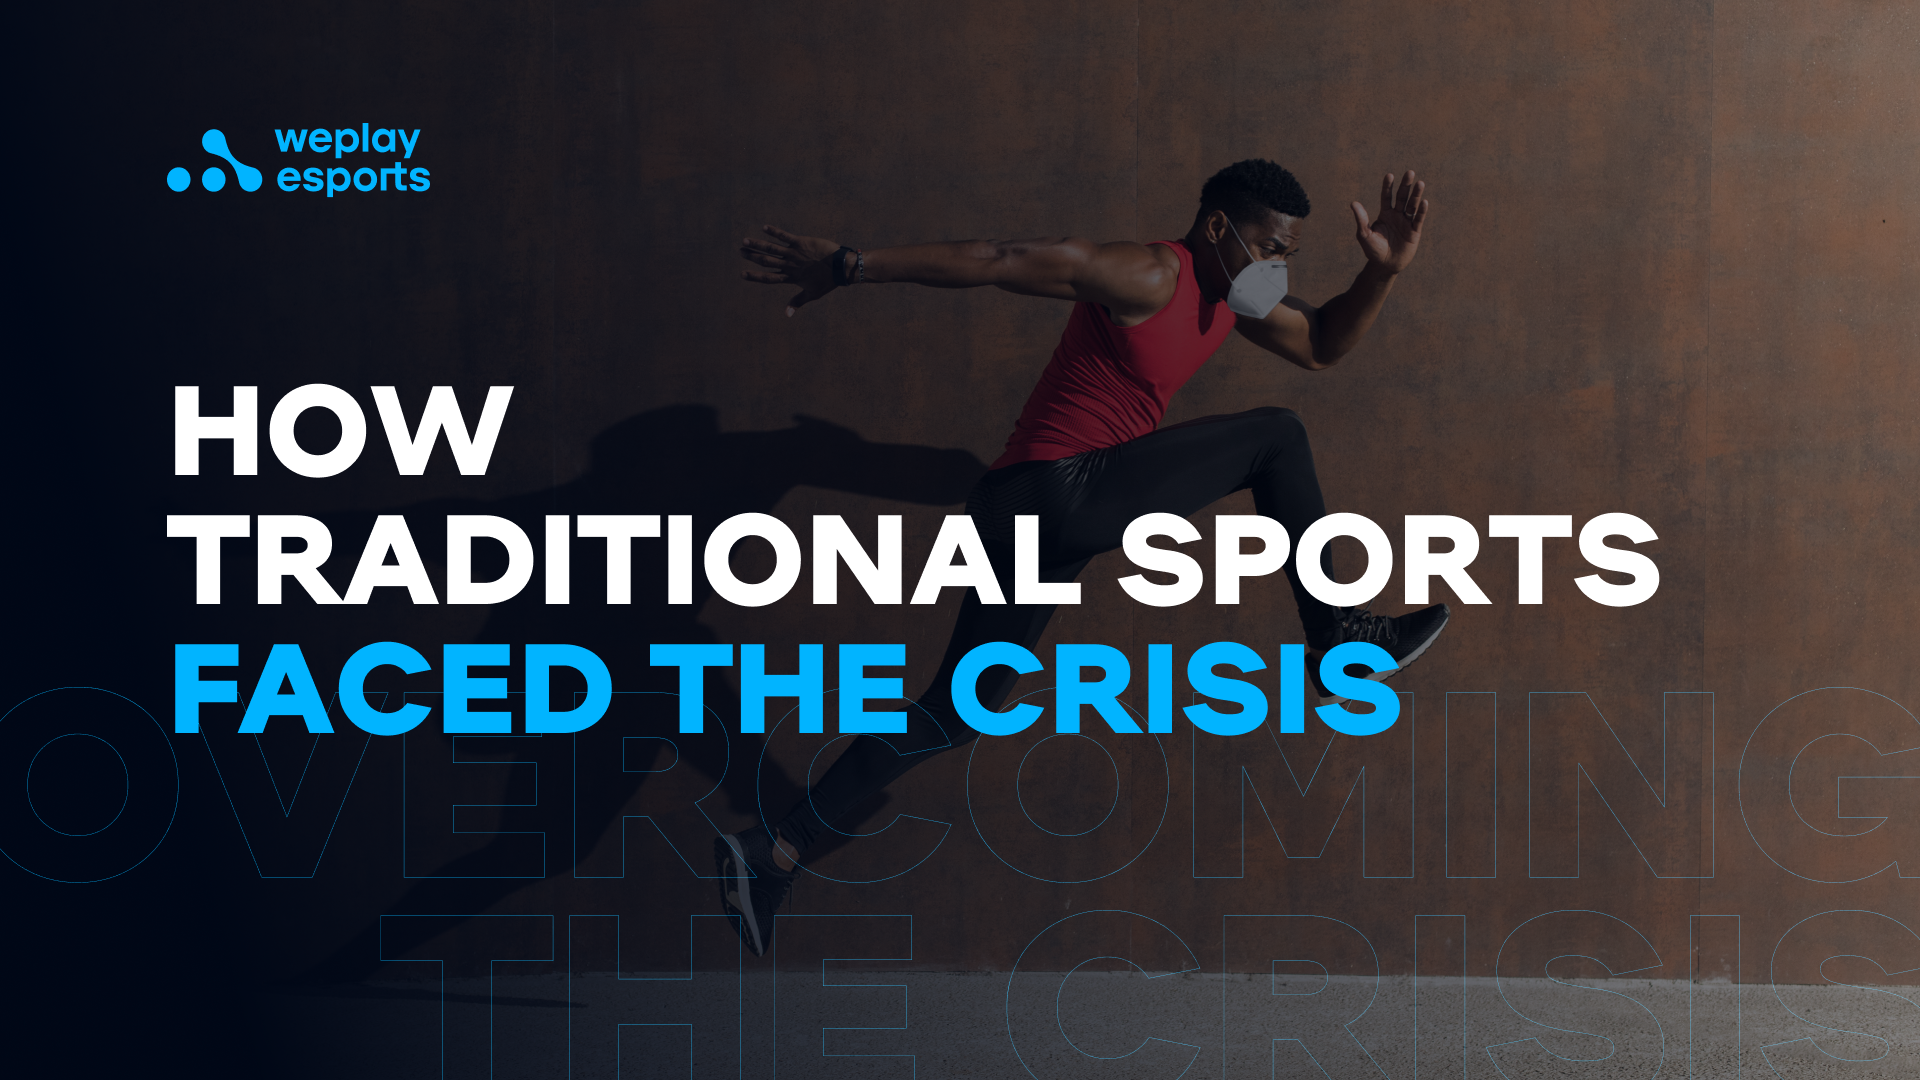 How traditional sports faced the crisis